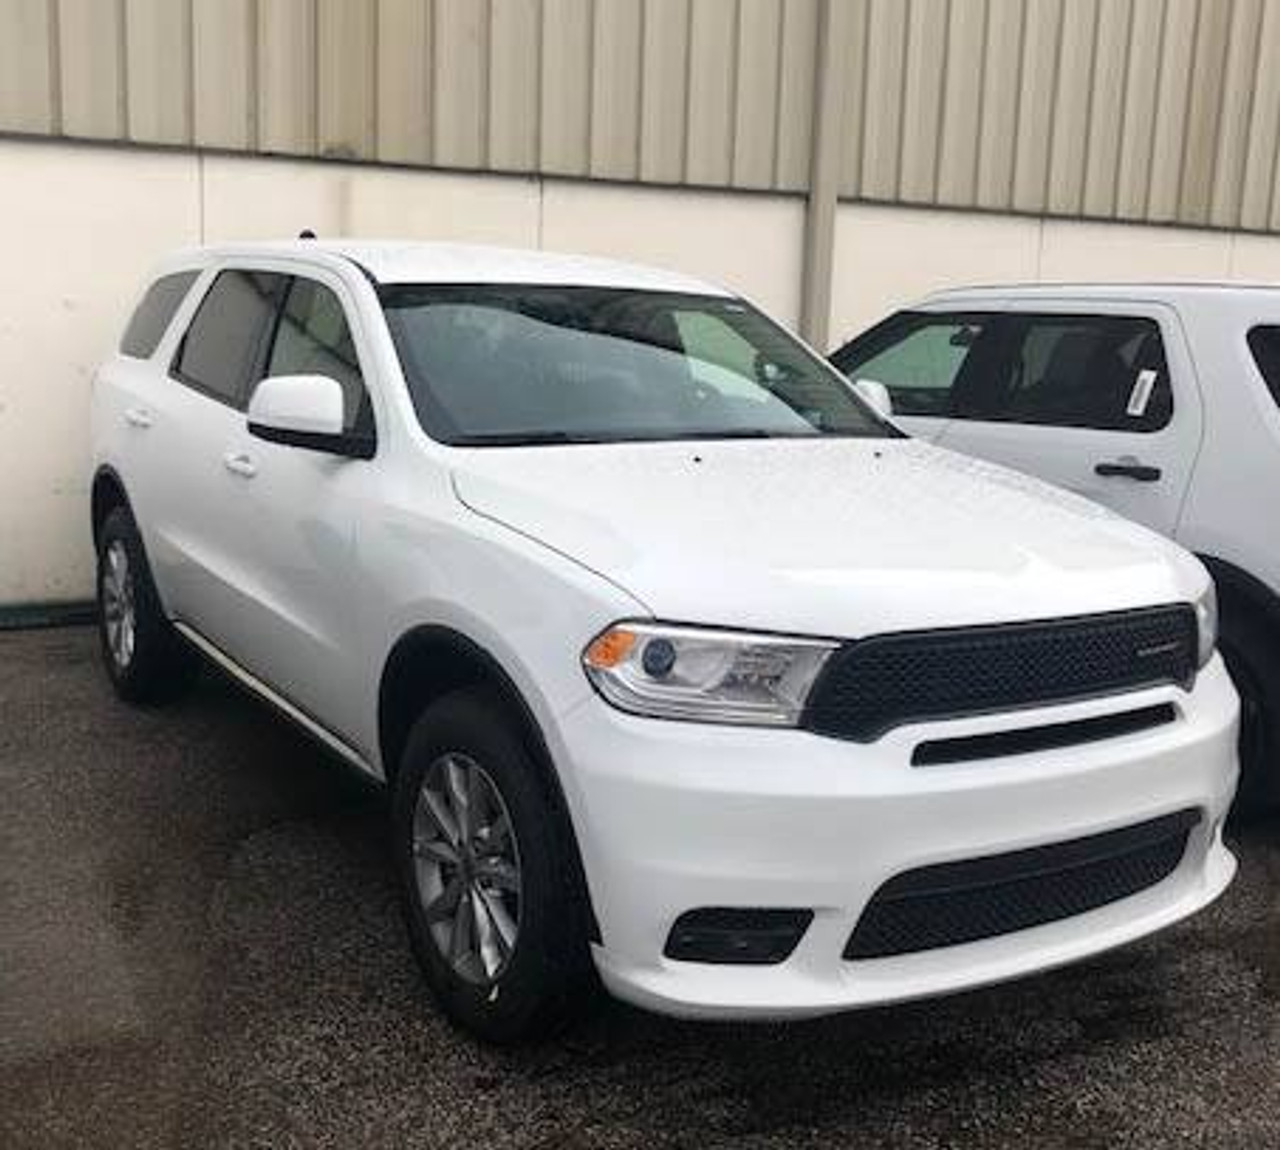 New 2019 White Dodge Durango Law Enforcement Package V6 AWD All-Wheel Drive, ready to be built as a Marked Patrol Package, choose any color LED Lights, + Delivery